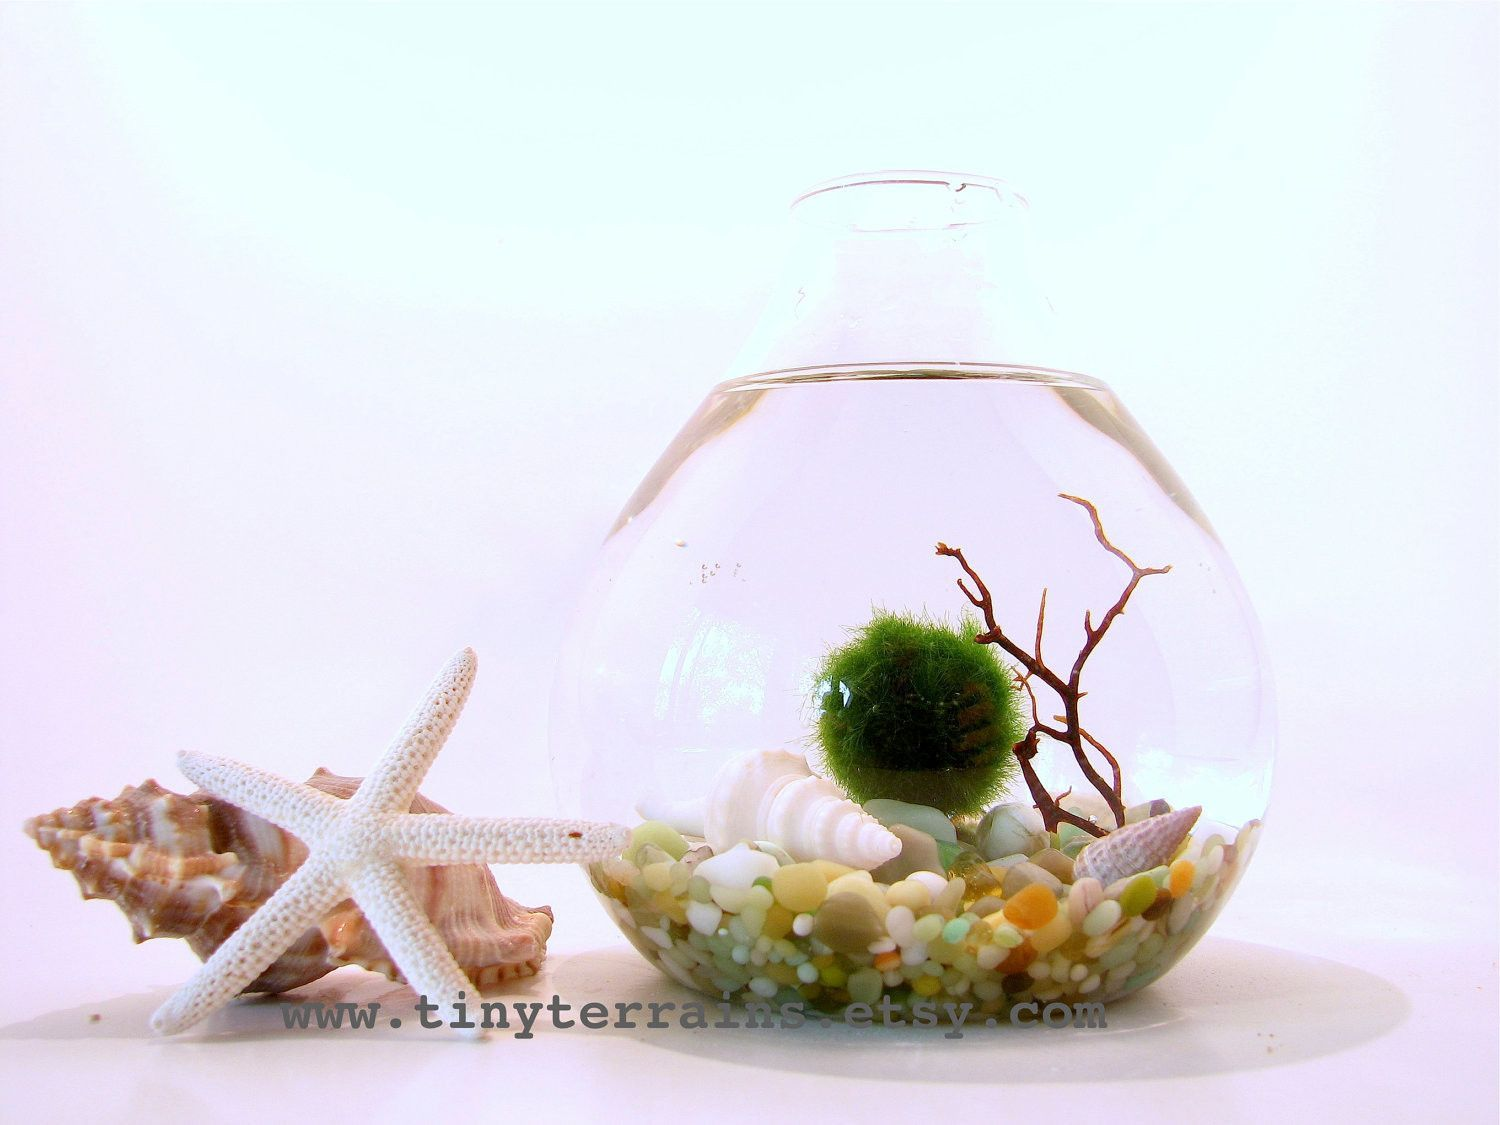 FREE 2nd Marimo Ball included: Marimo Moss Ball Teardrop Aquarium / Terrarium - Several colors available